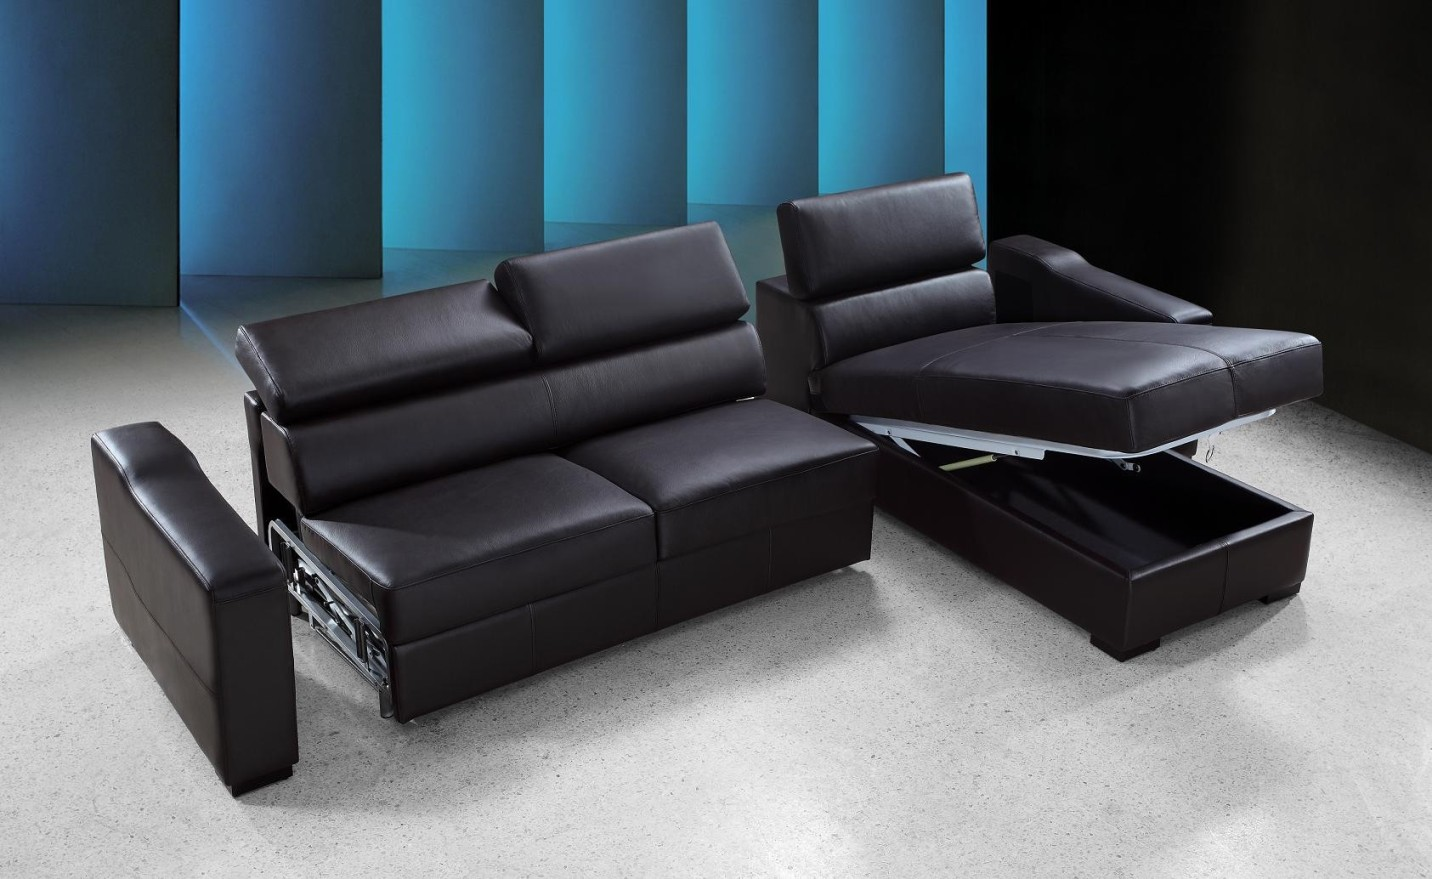 comfort sleepers sofa beds how to replace springs on leather functionality and elegance